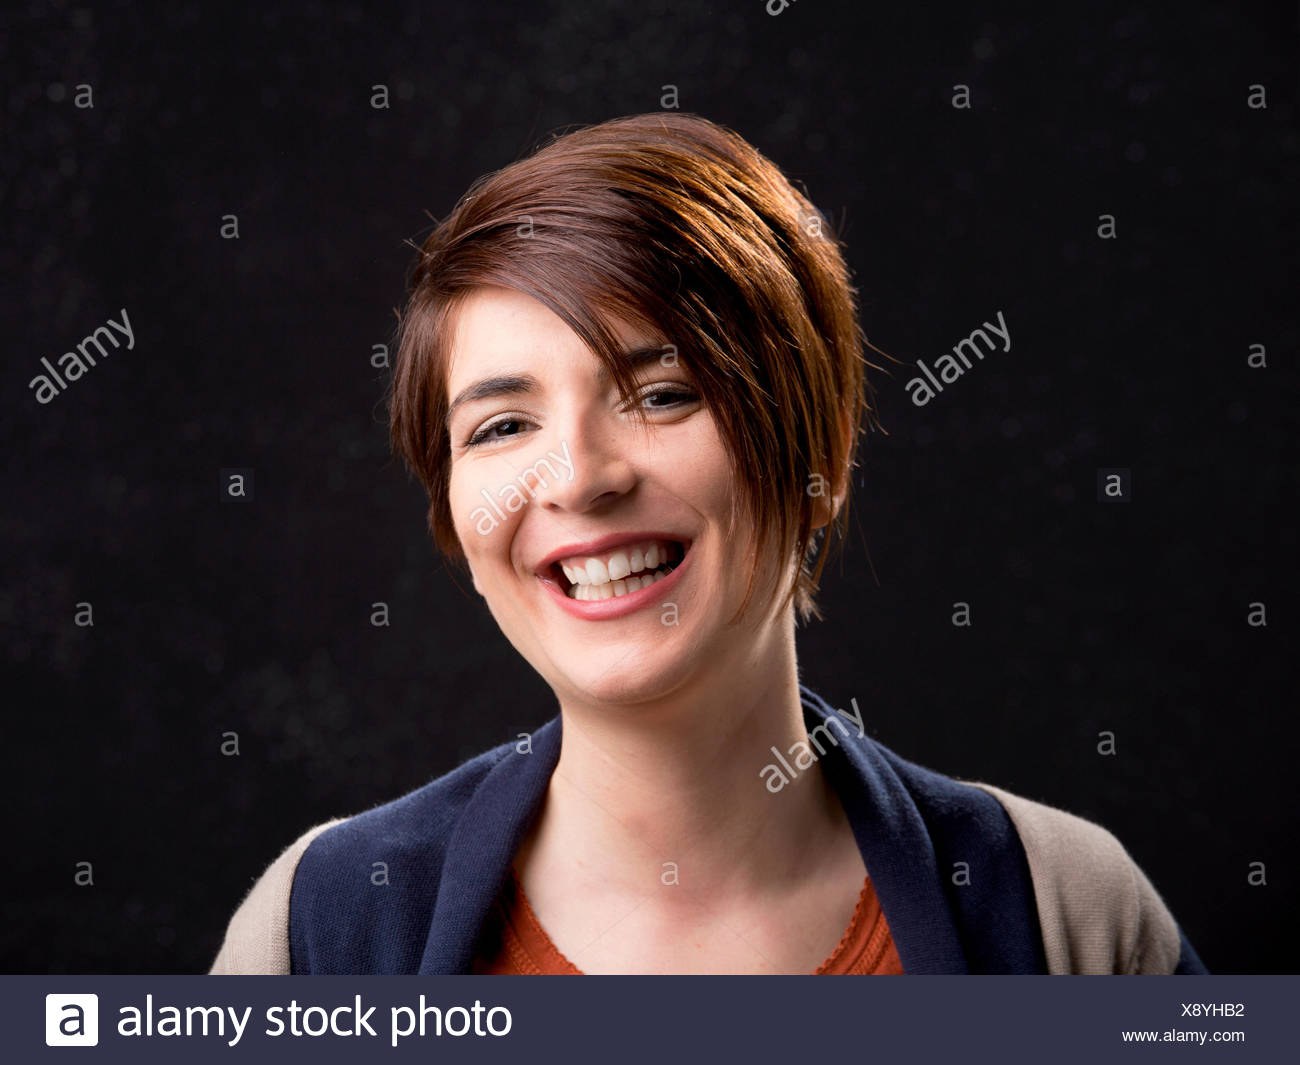 Portrait Of A Beautiful Woman Laughing And With A Modern Hair Cut